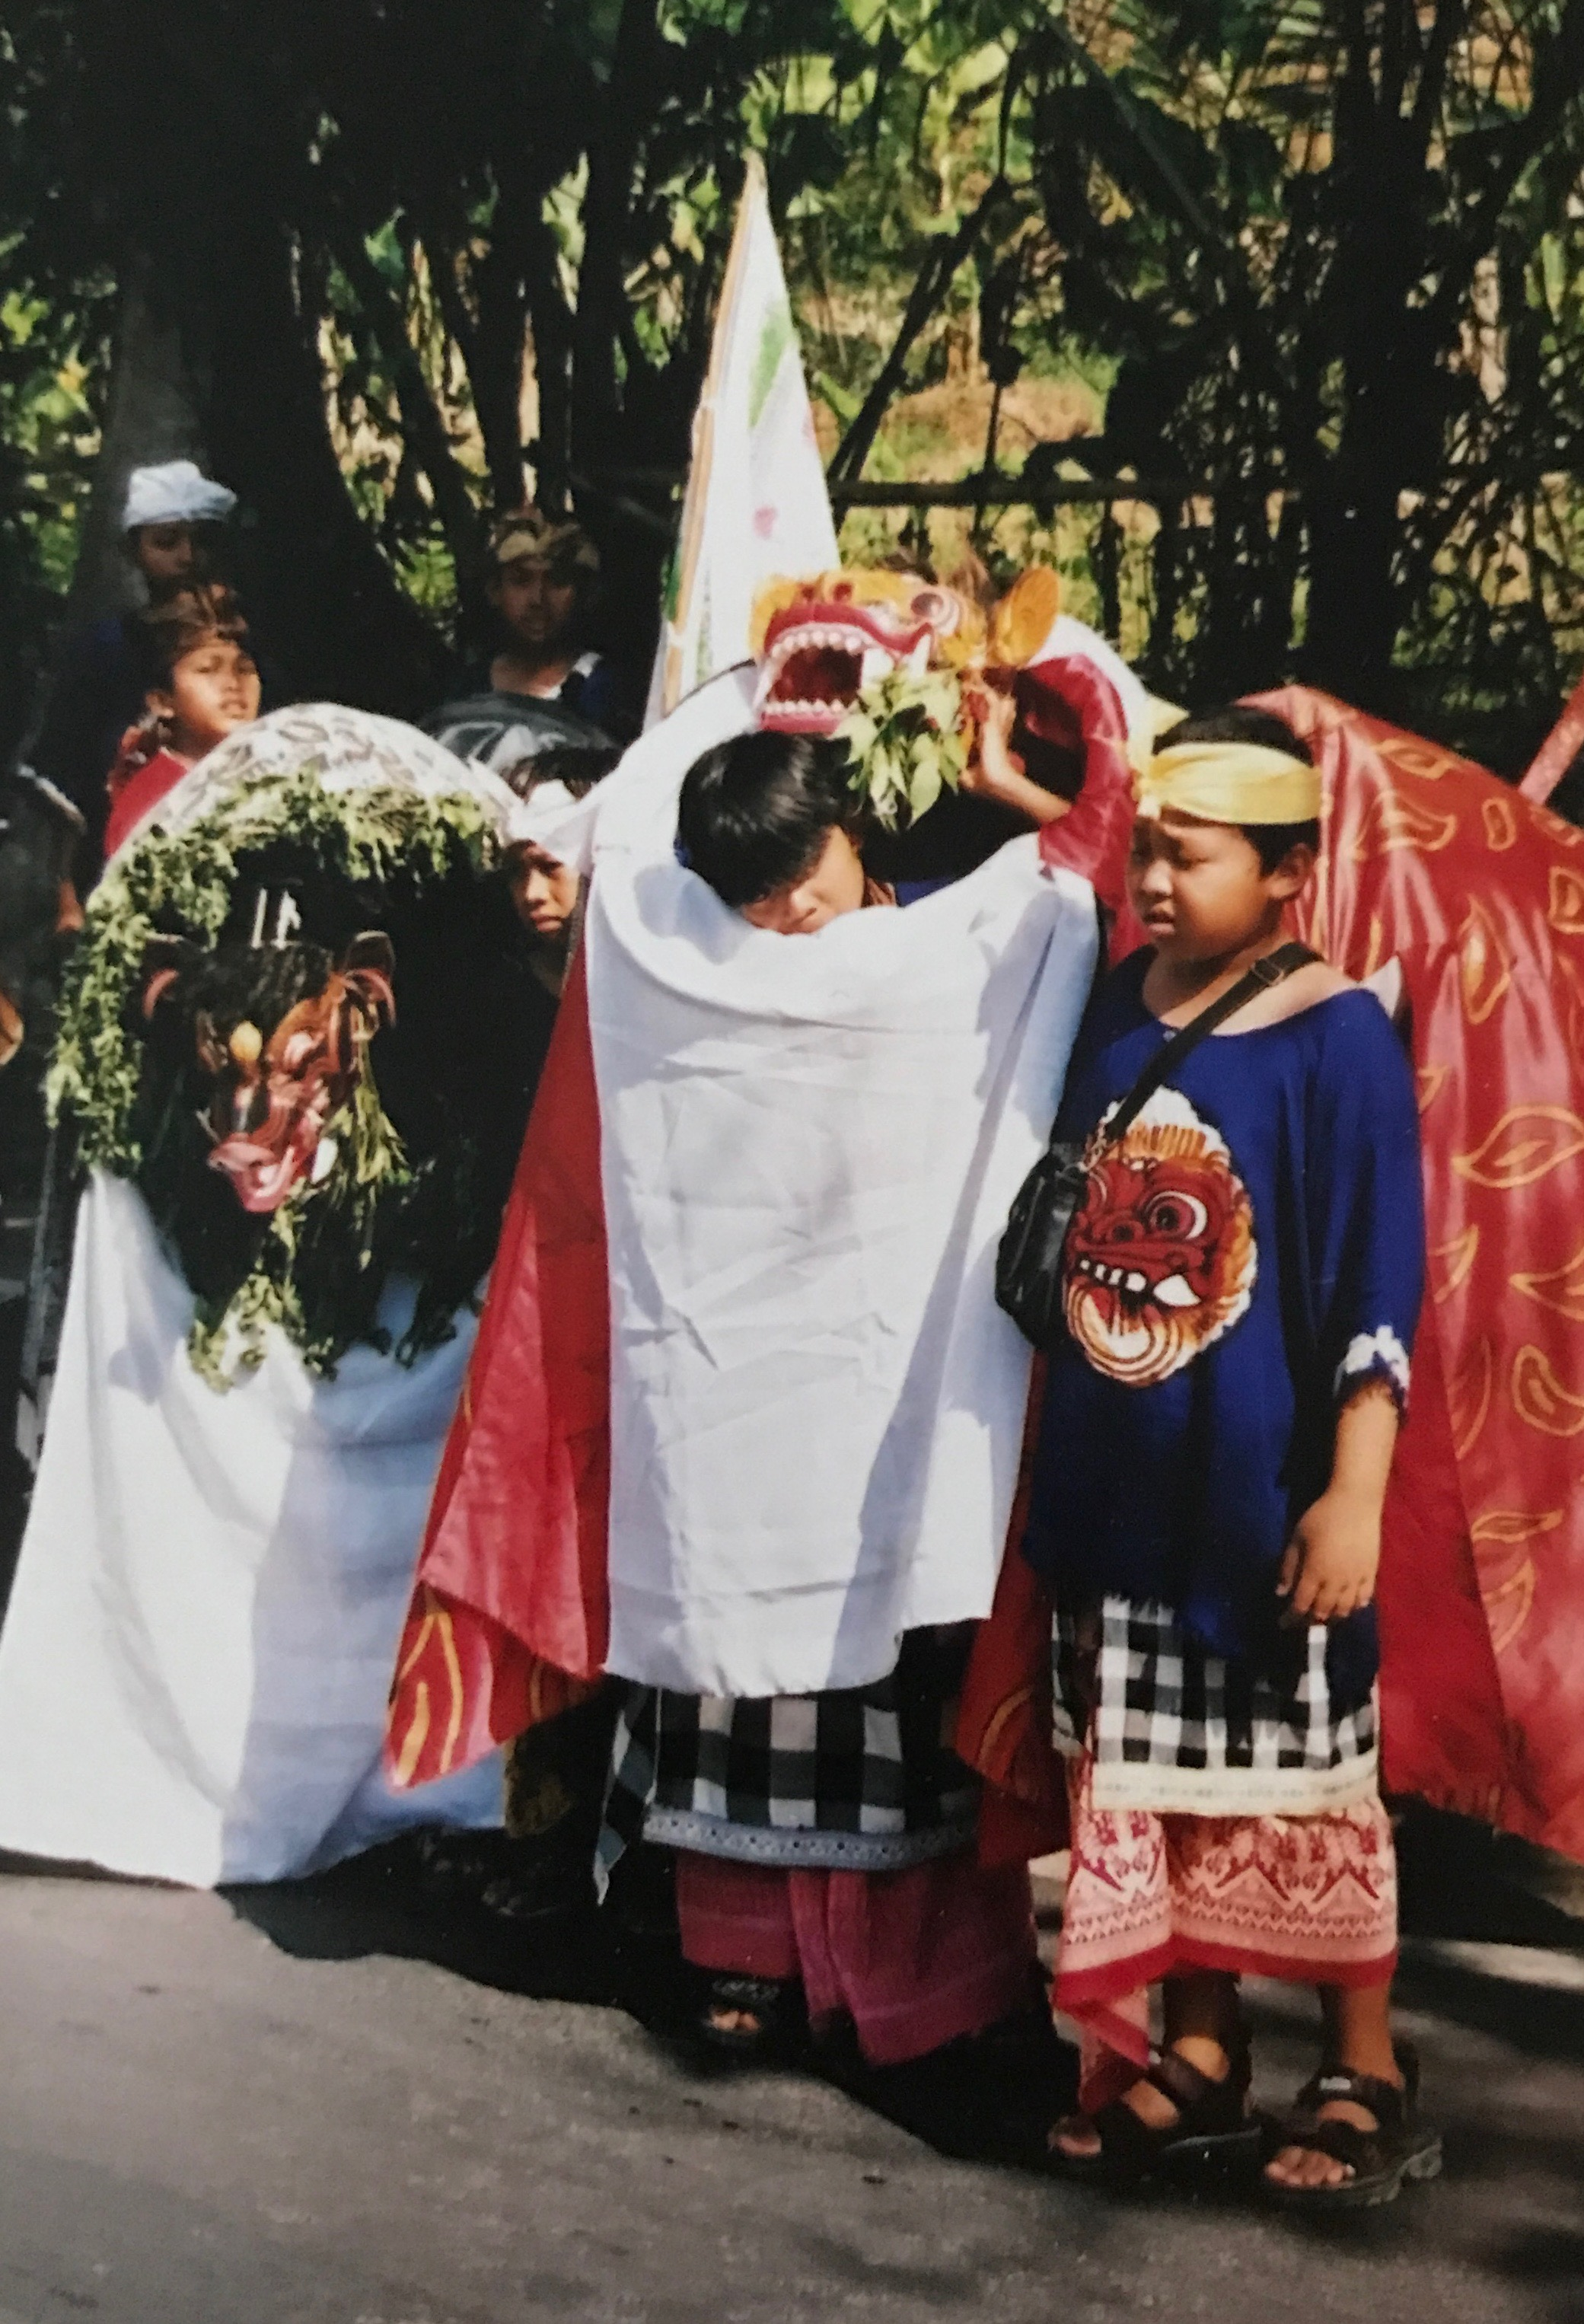 During the Galungan festivities, boys don the Barong mask and parade through town, looking for sweets